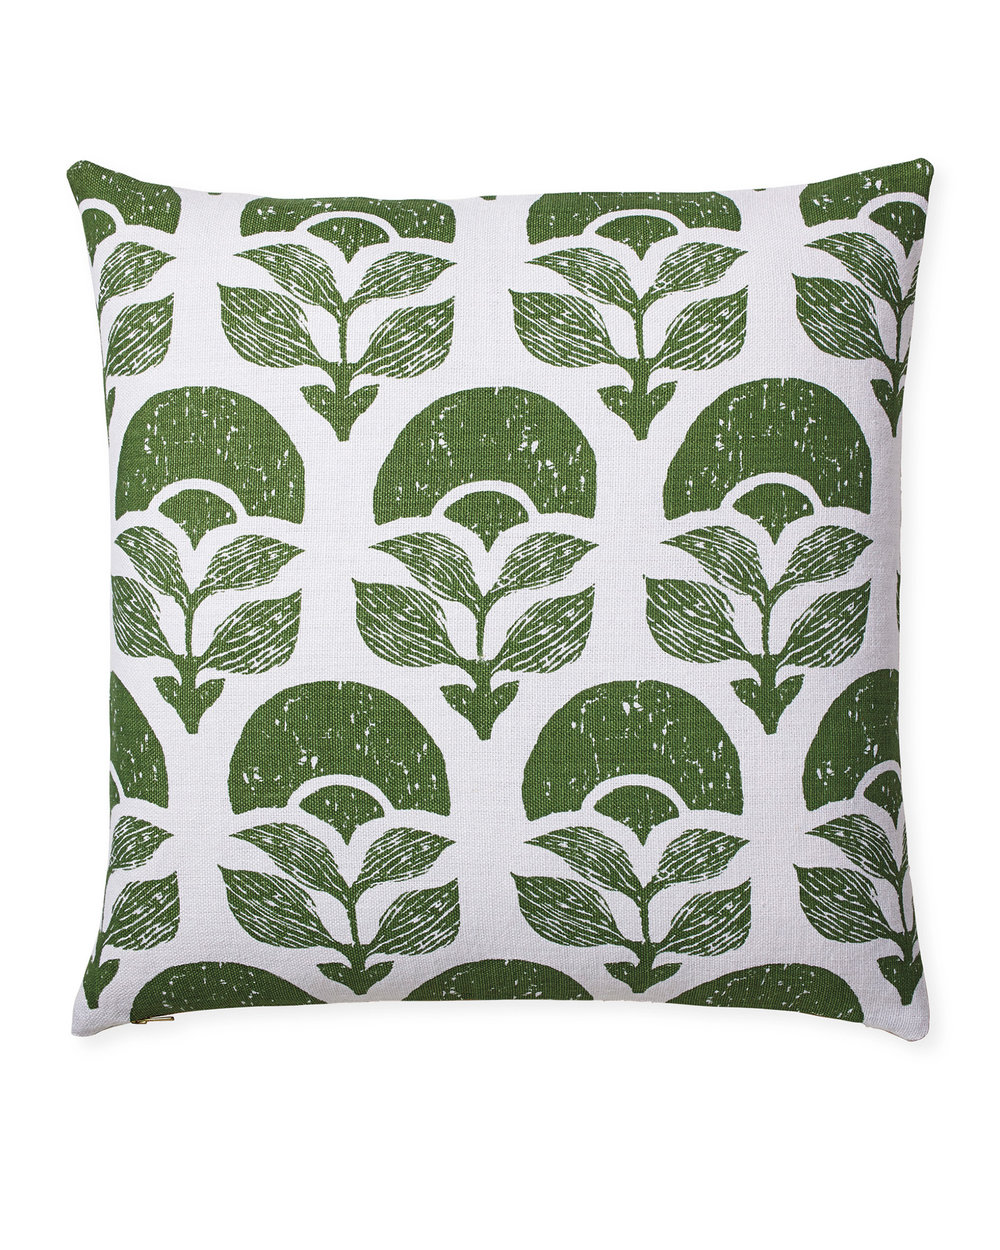 Dec_Pillow_Larkspur_Printed_24x24_Moss_Front_MV_Crop_SH.jpg